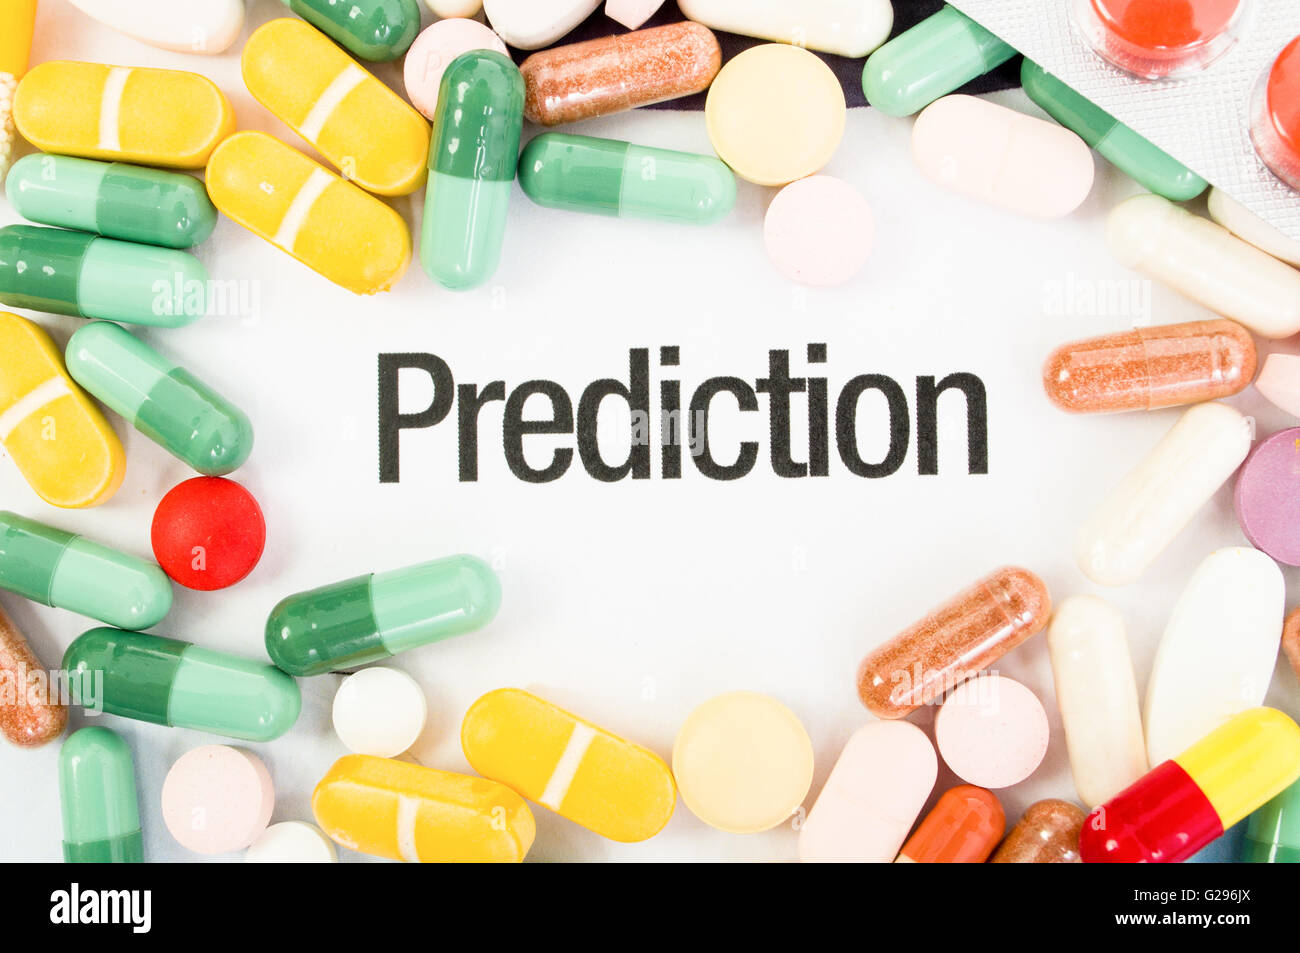 Prediction text between colored pills. Drugs sales concept - Stock Image